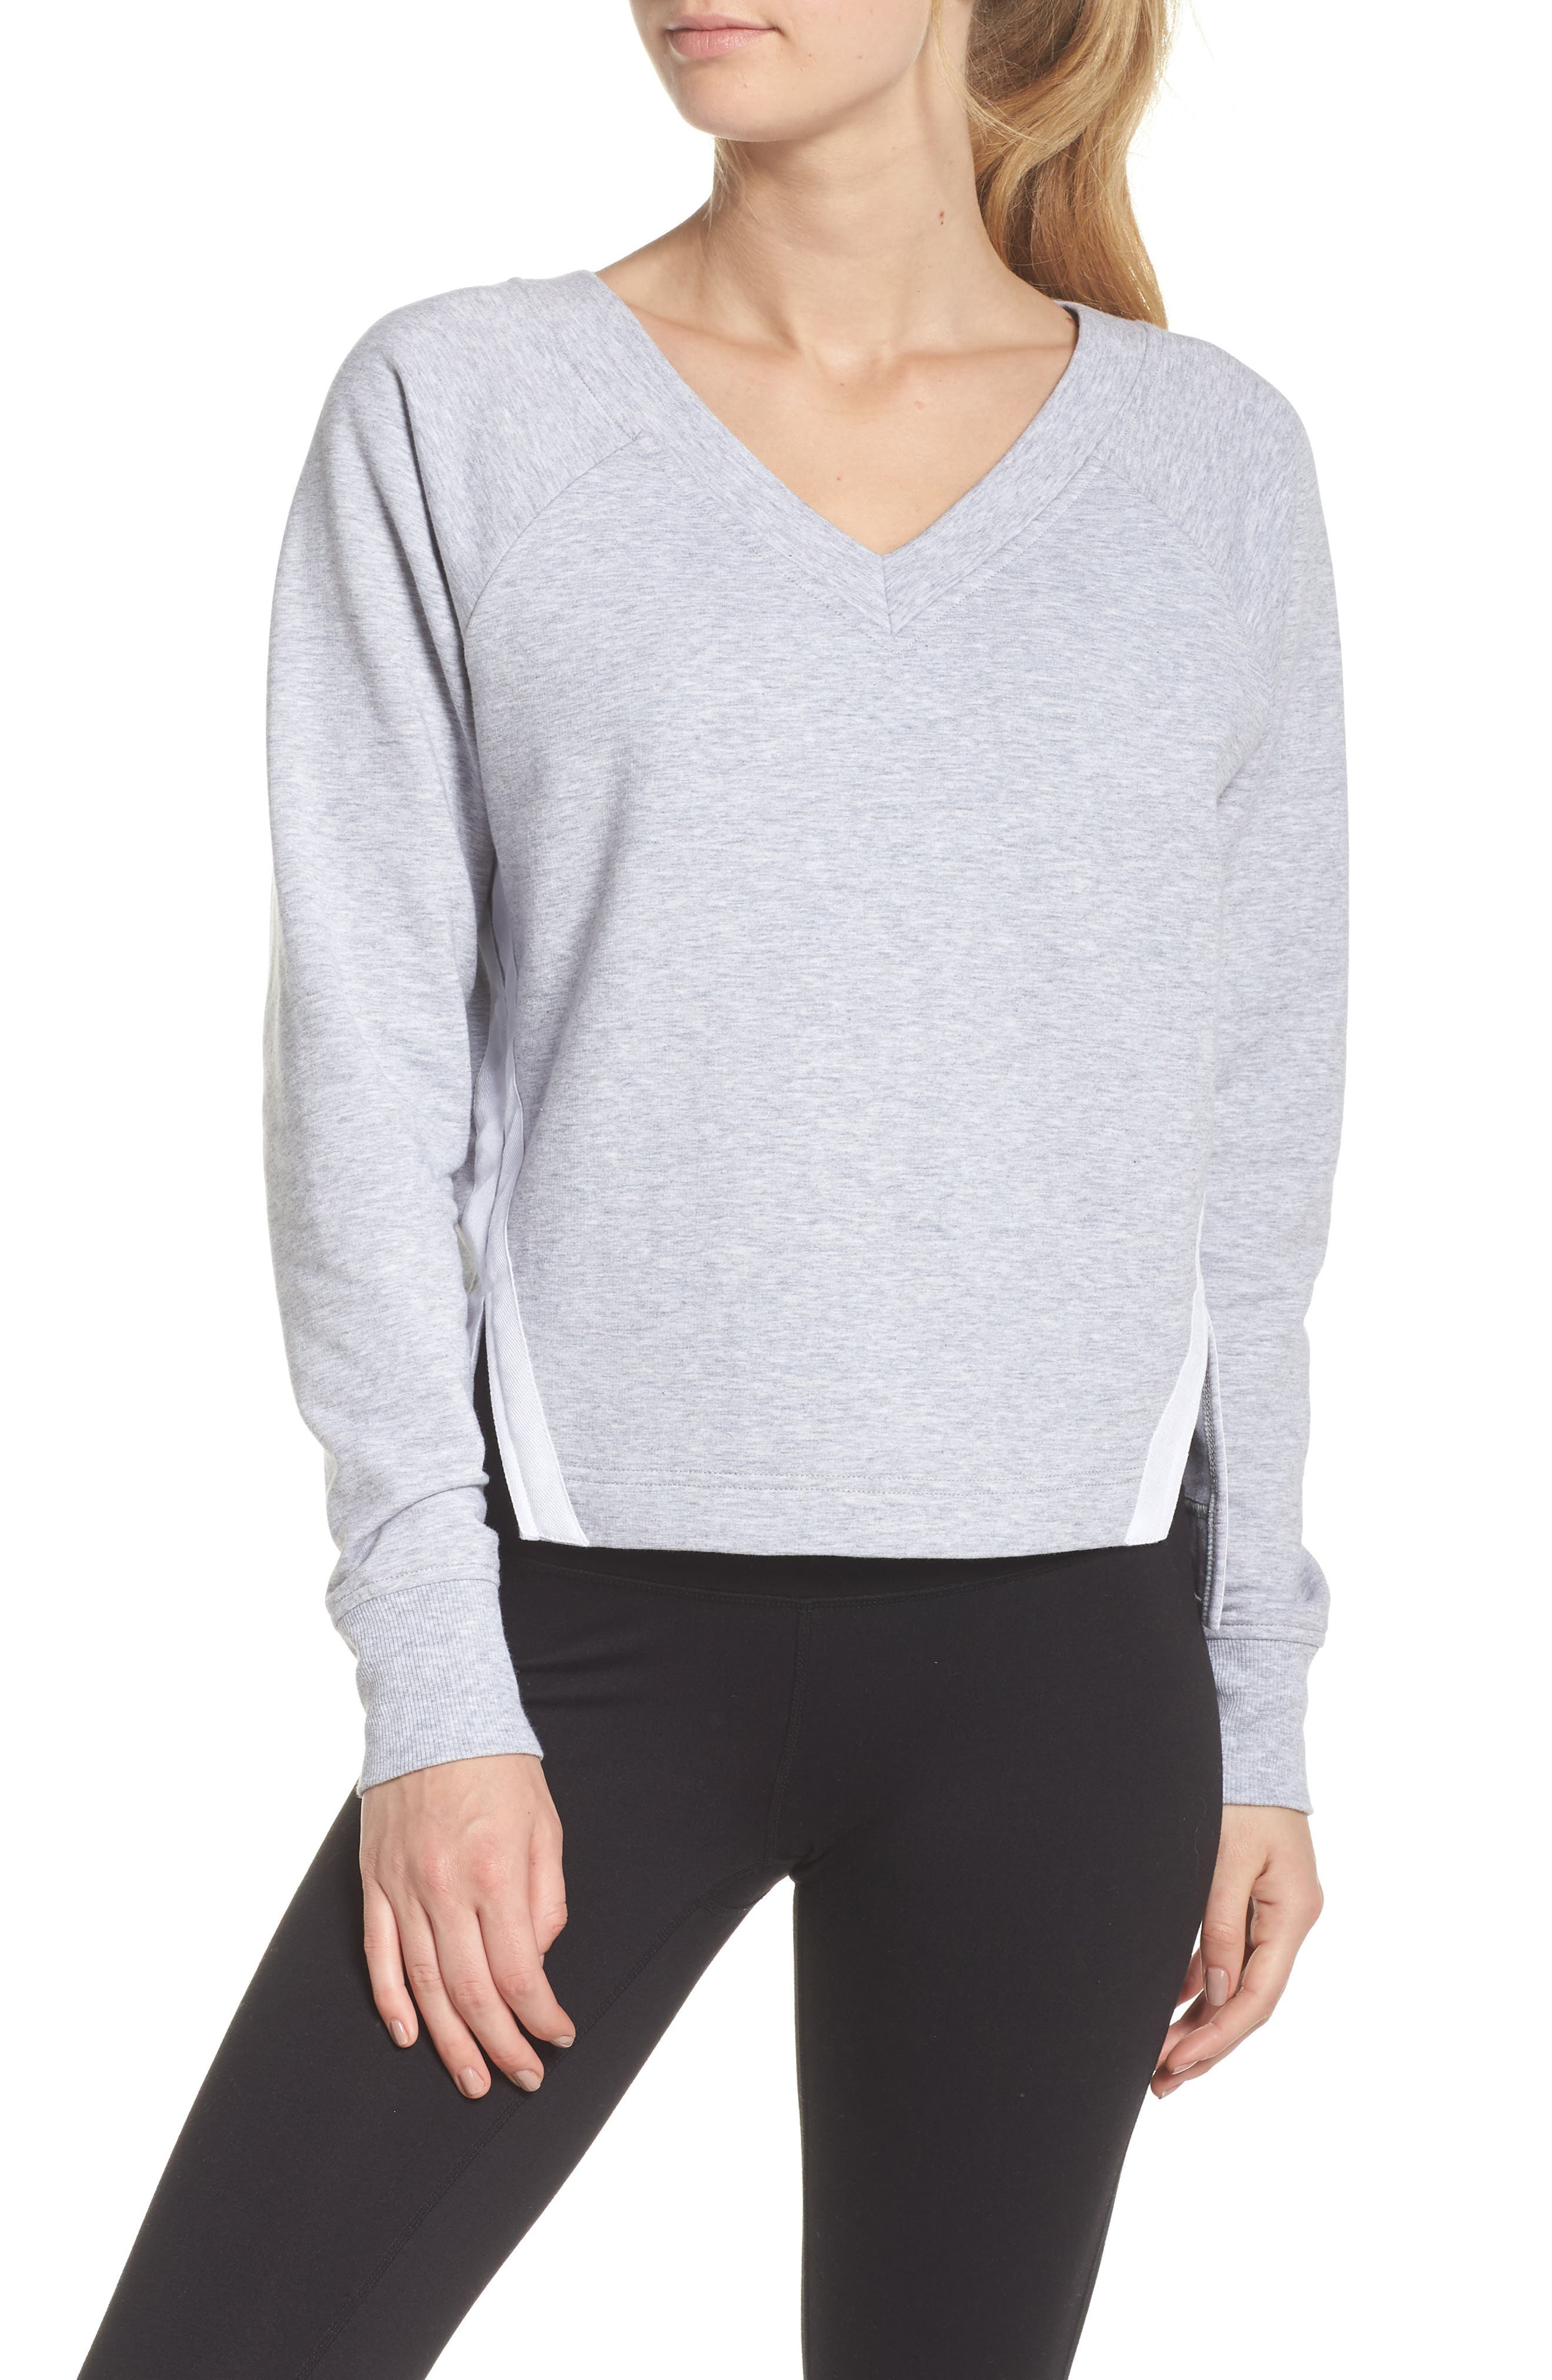 Liv Pullover,                             Main thumbnail 1, color,                             GREY QUIET HEATHER